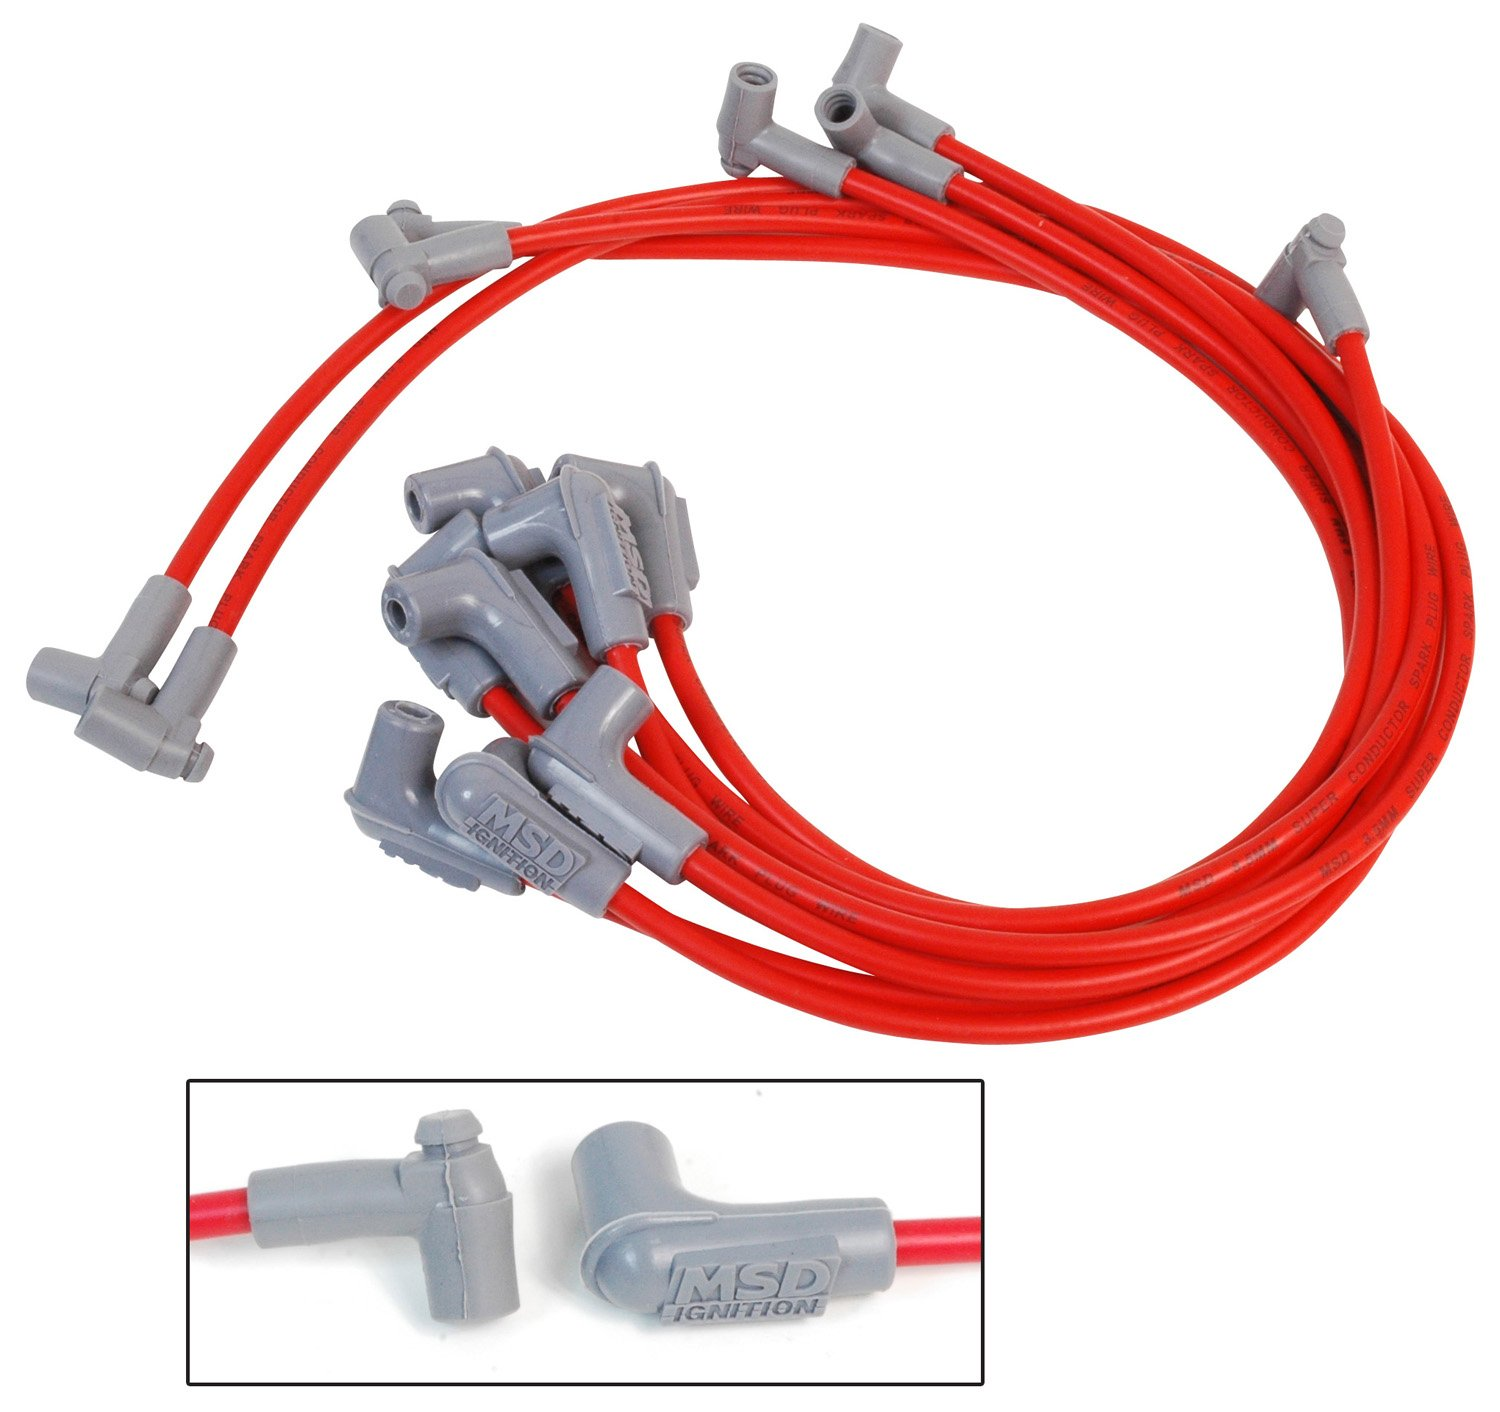 wire set for spark plug with 35659 on Boignsen R088edl together with Free Fishbone Diagram Template Word moreover 331354387240 in addition Bosch Wasted Spark Ignition Coil Assembly 6 Cylinder Engines also Black 25ftRoll Sleeving.